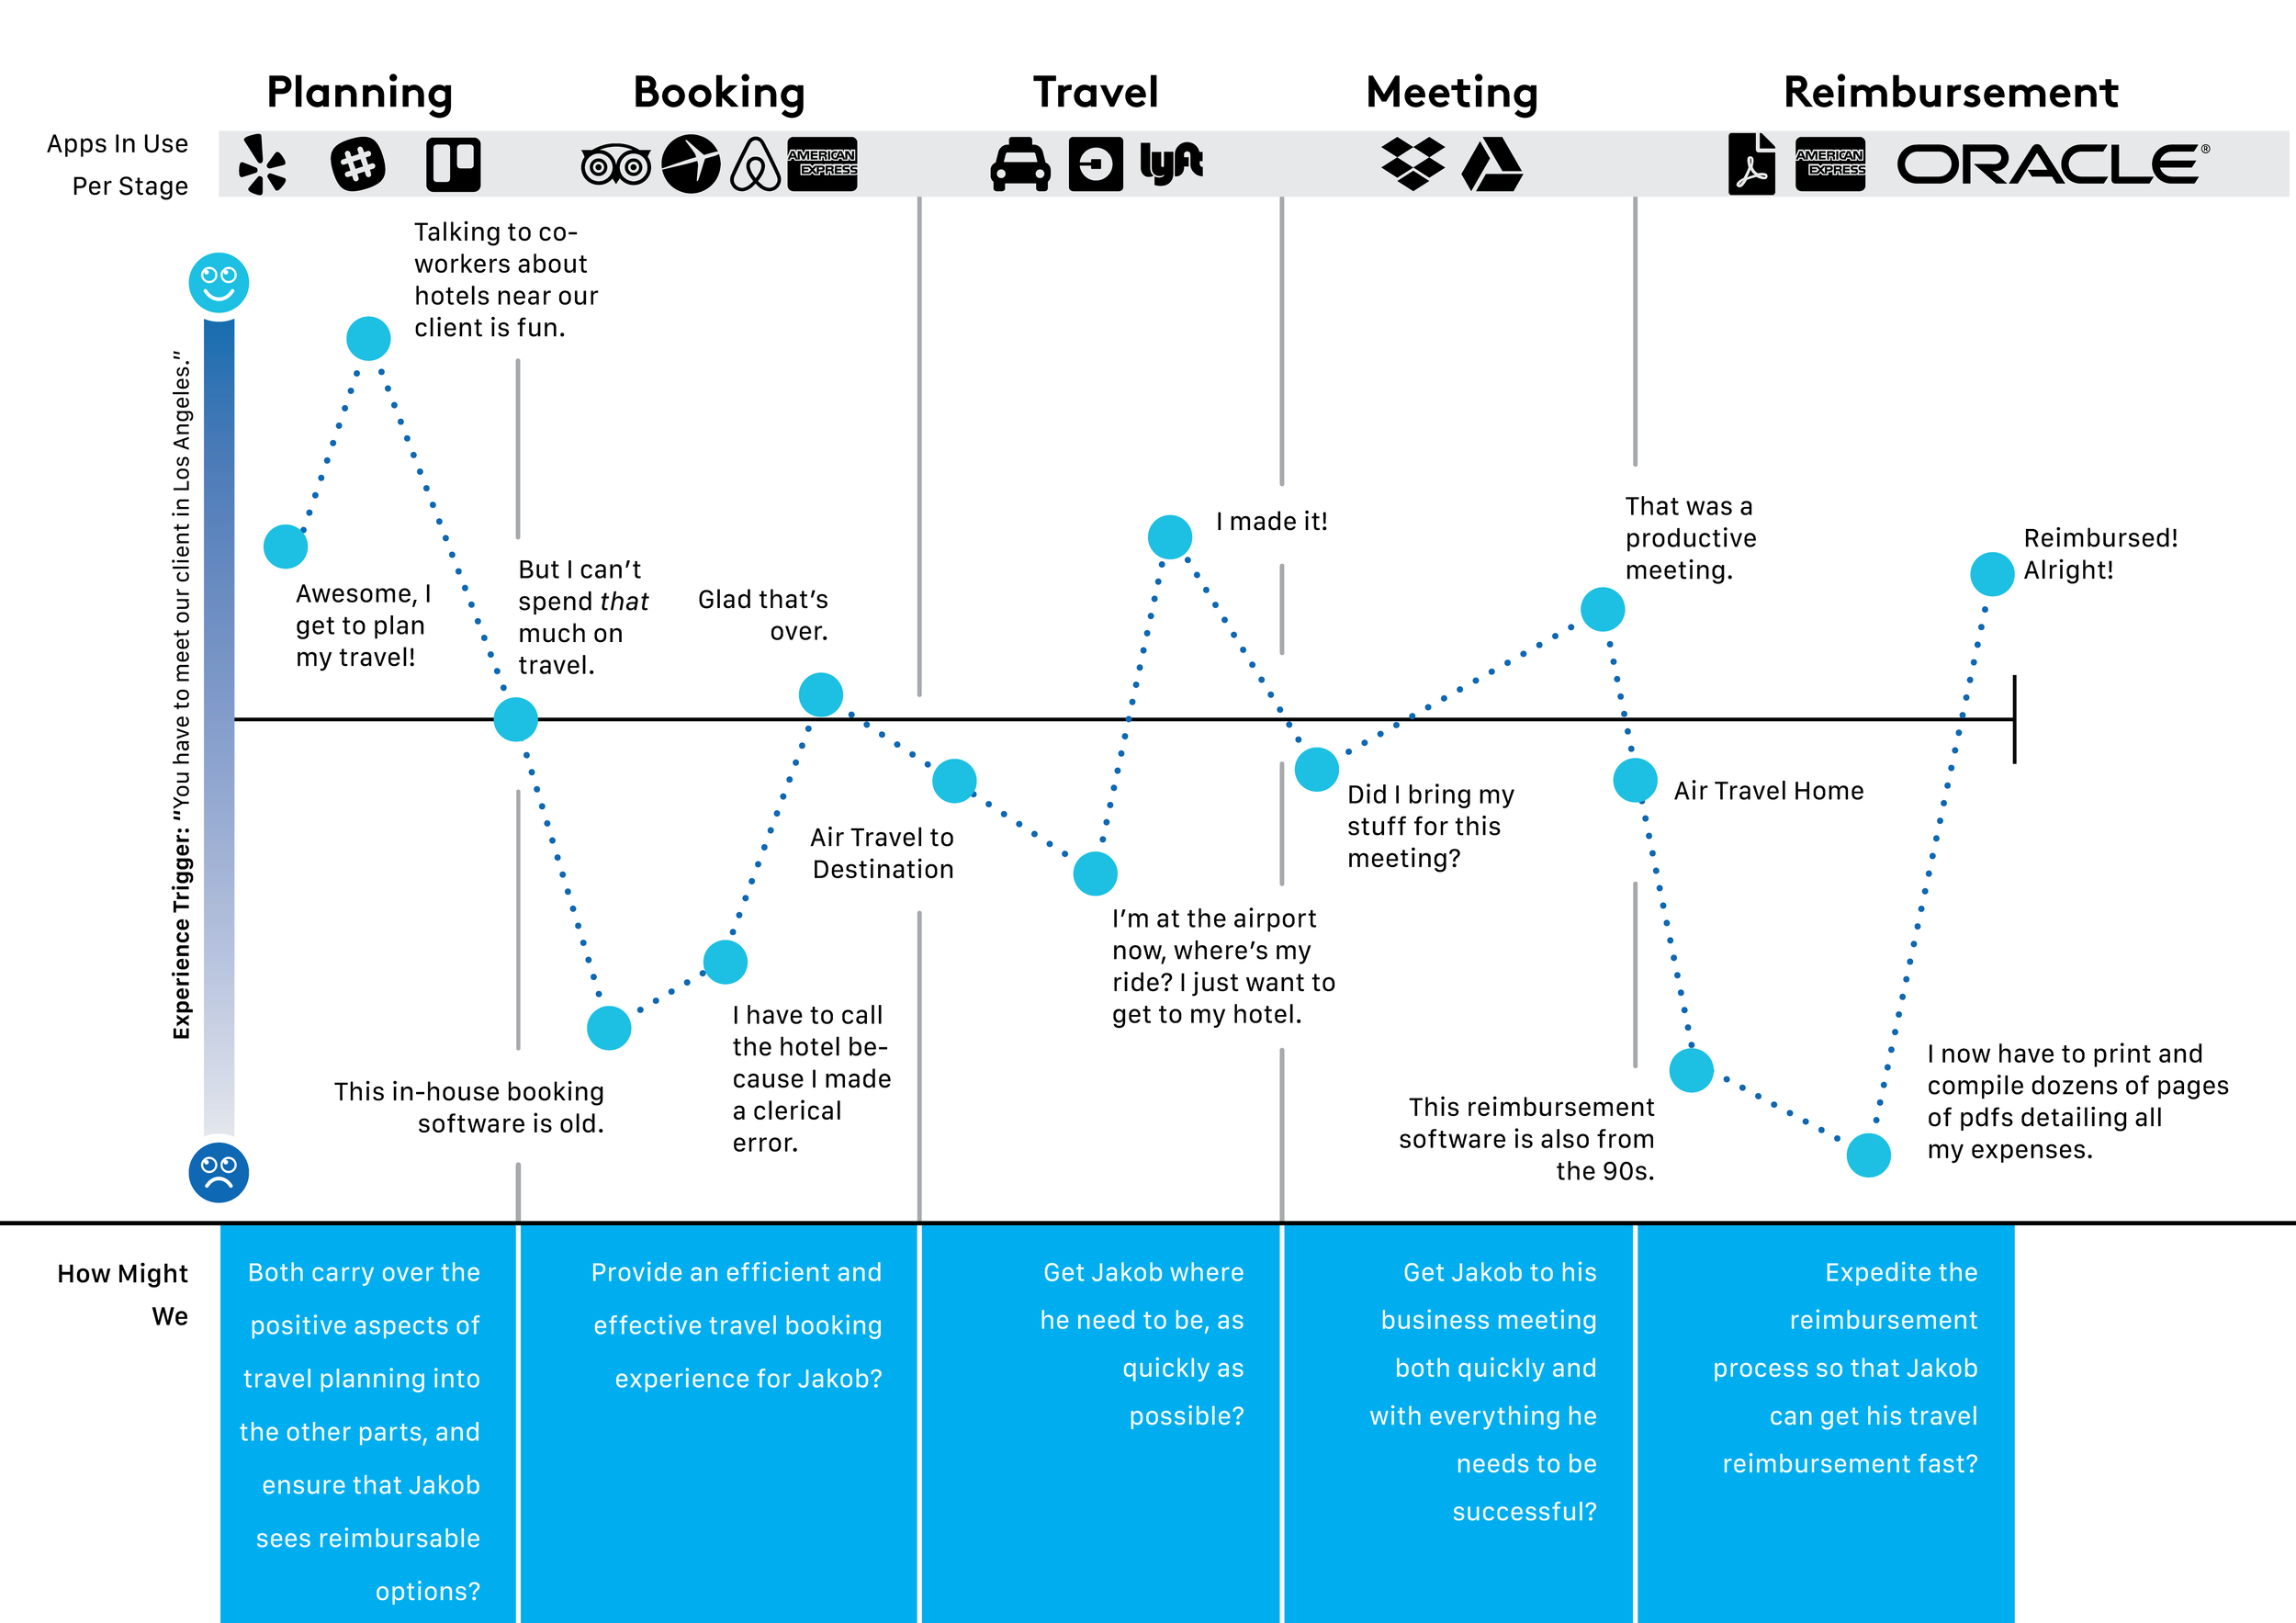 martin__User Journey copy.png